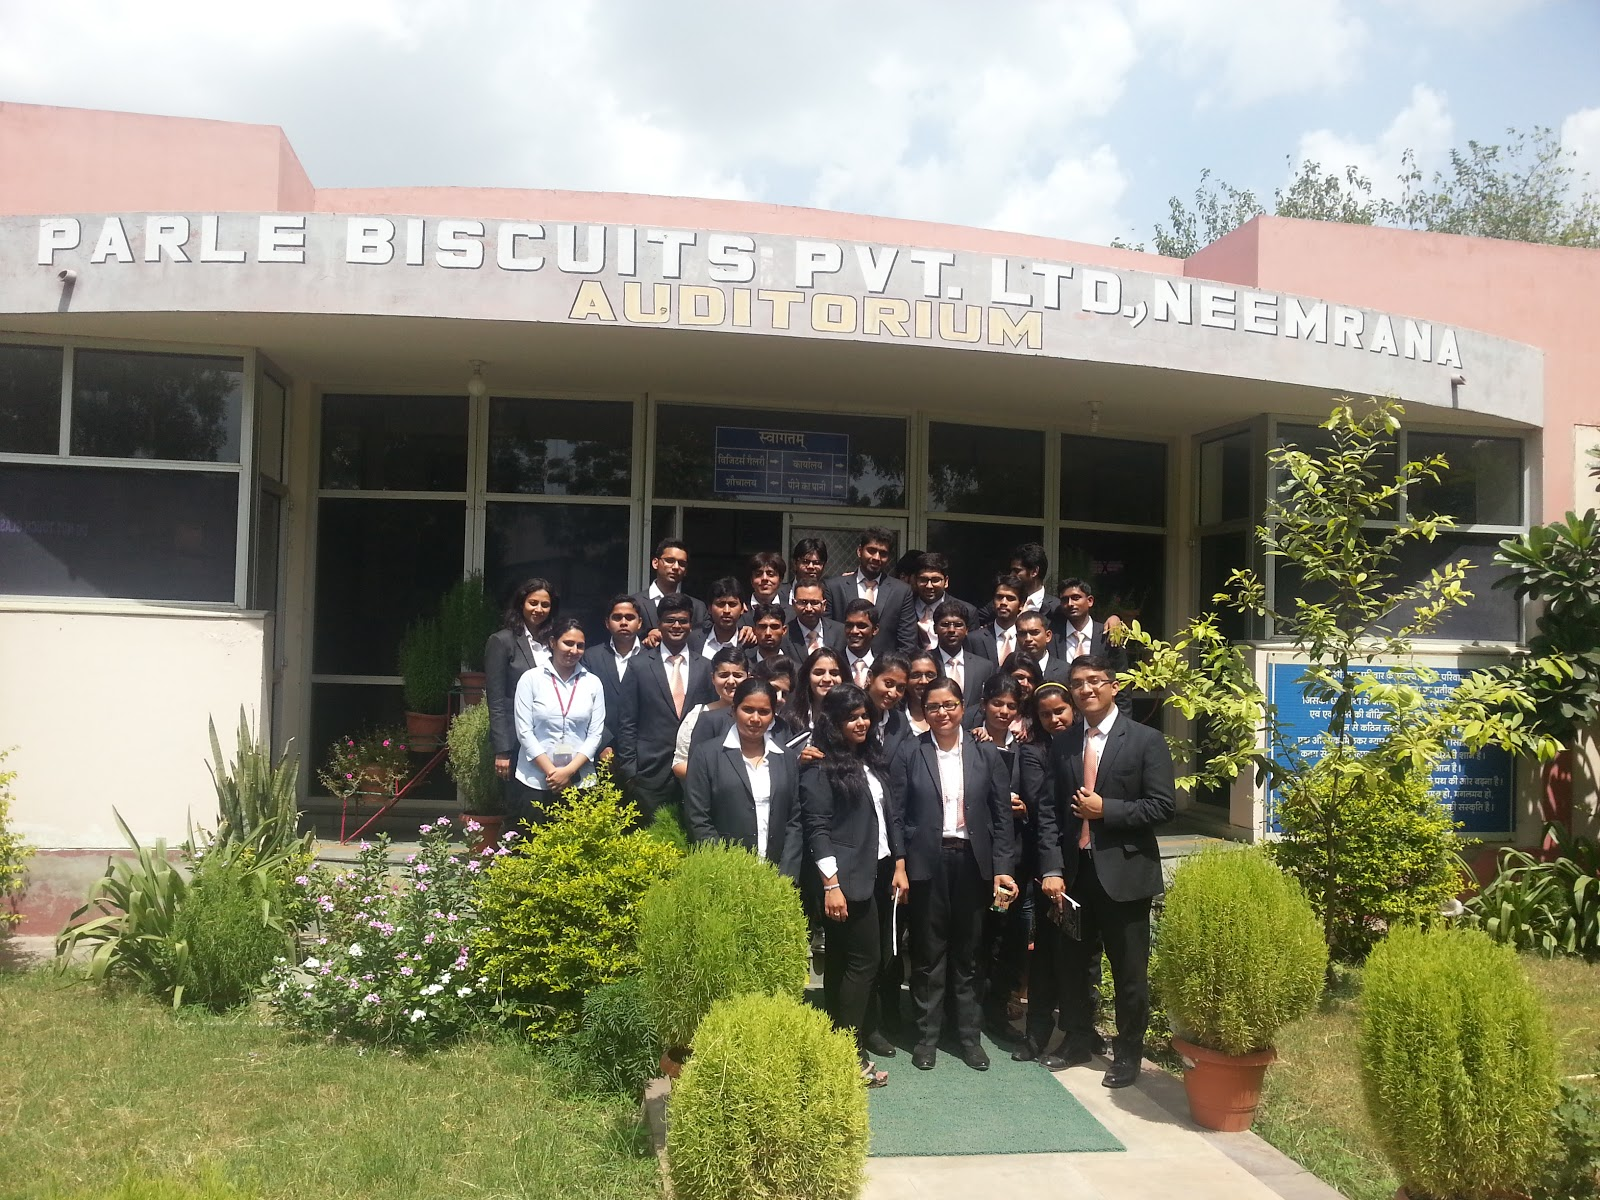 industry visit Please provide the list of software industry where you can arrange the tour for mca students in maharashtra and india.